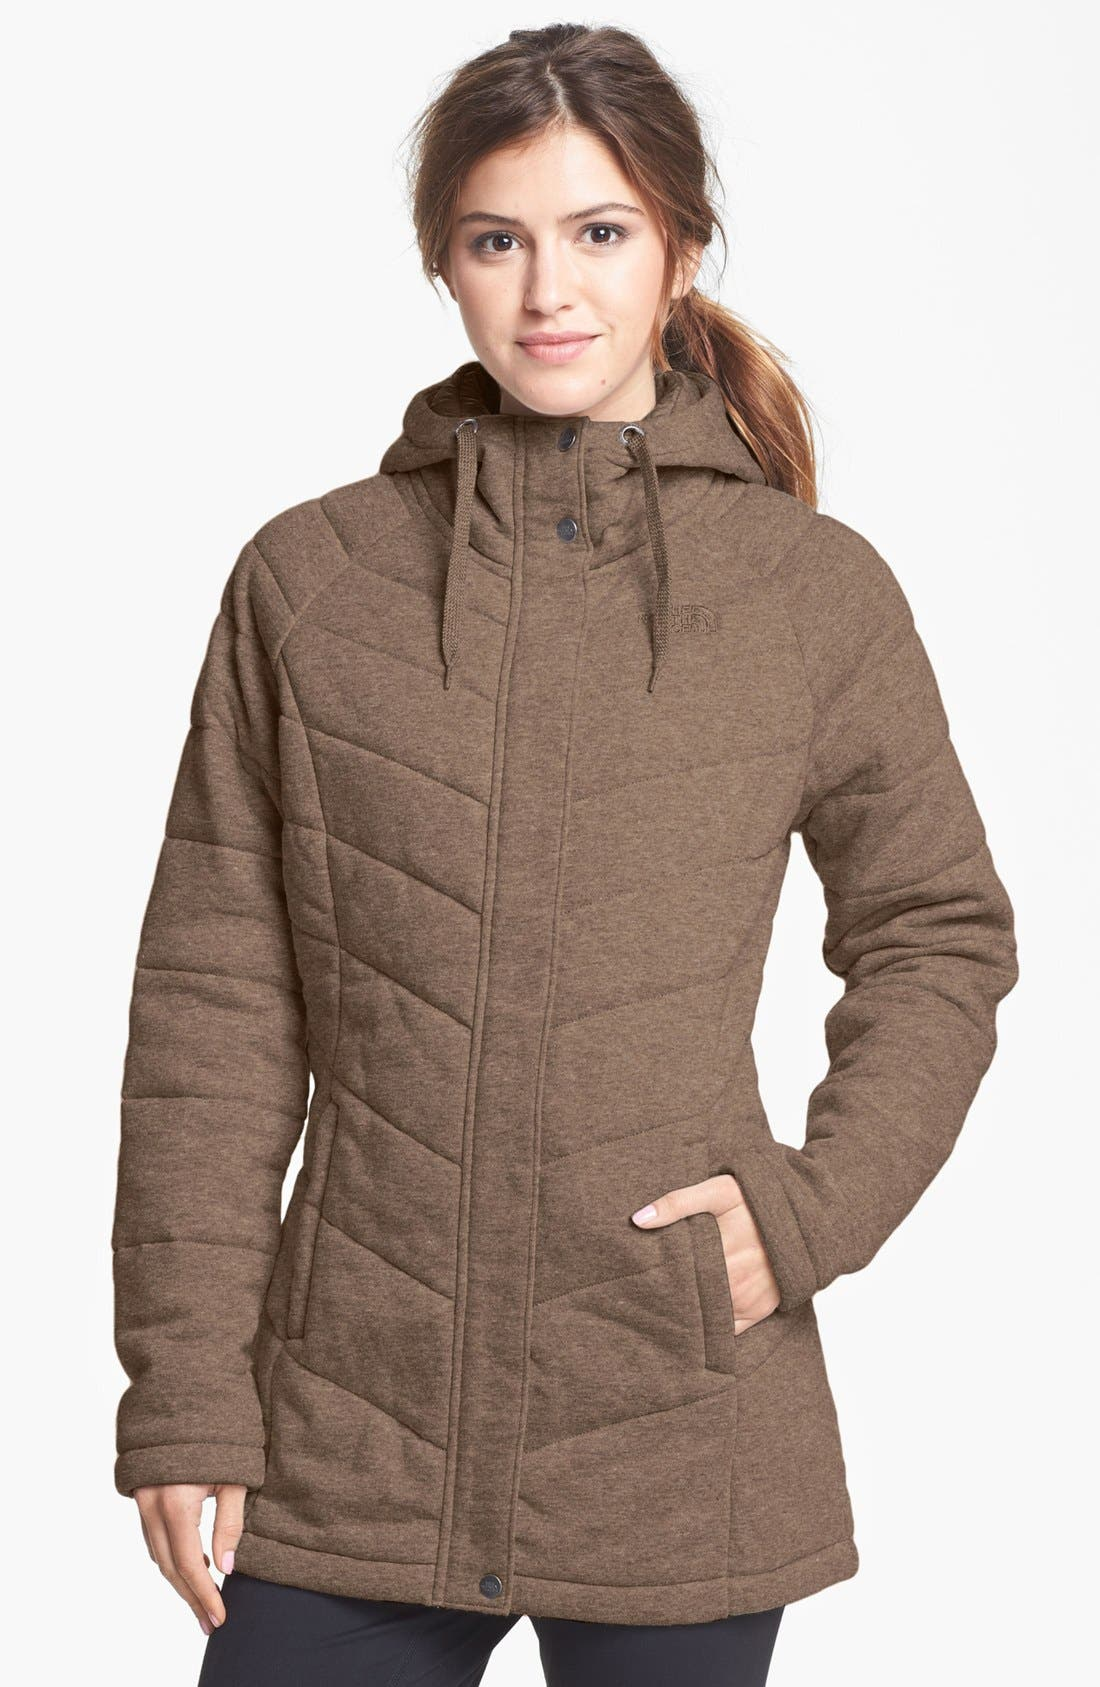 Alternate Image 1 Selected - The North Face 'Miss Kit' Hooded Fleece Jacket